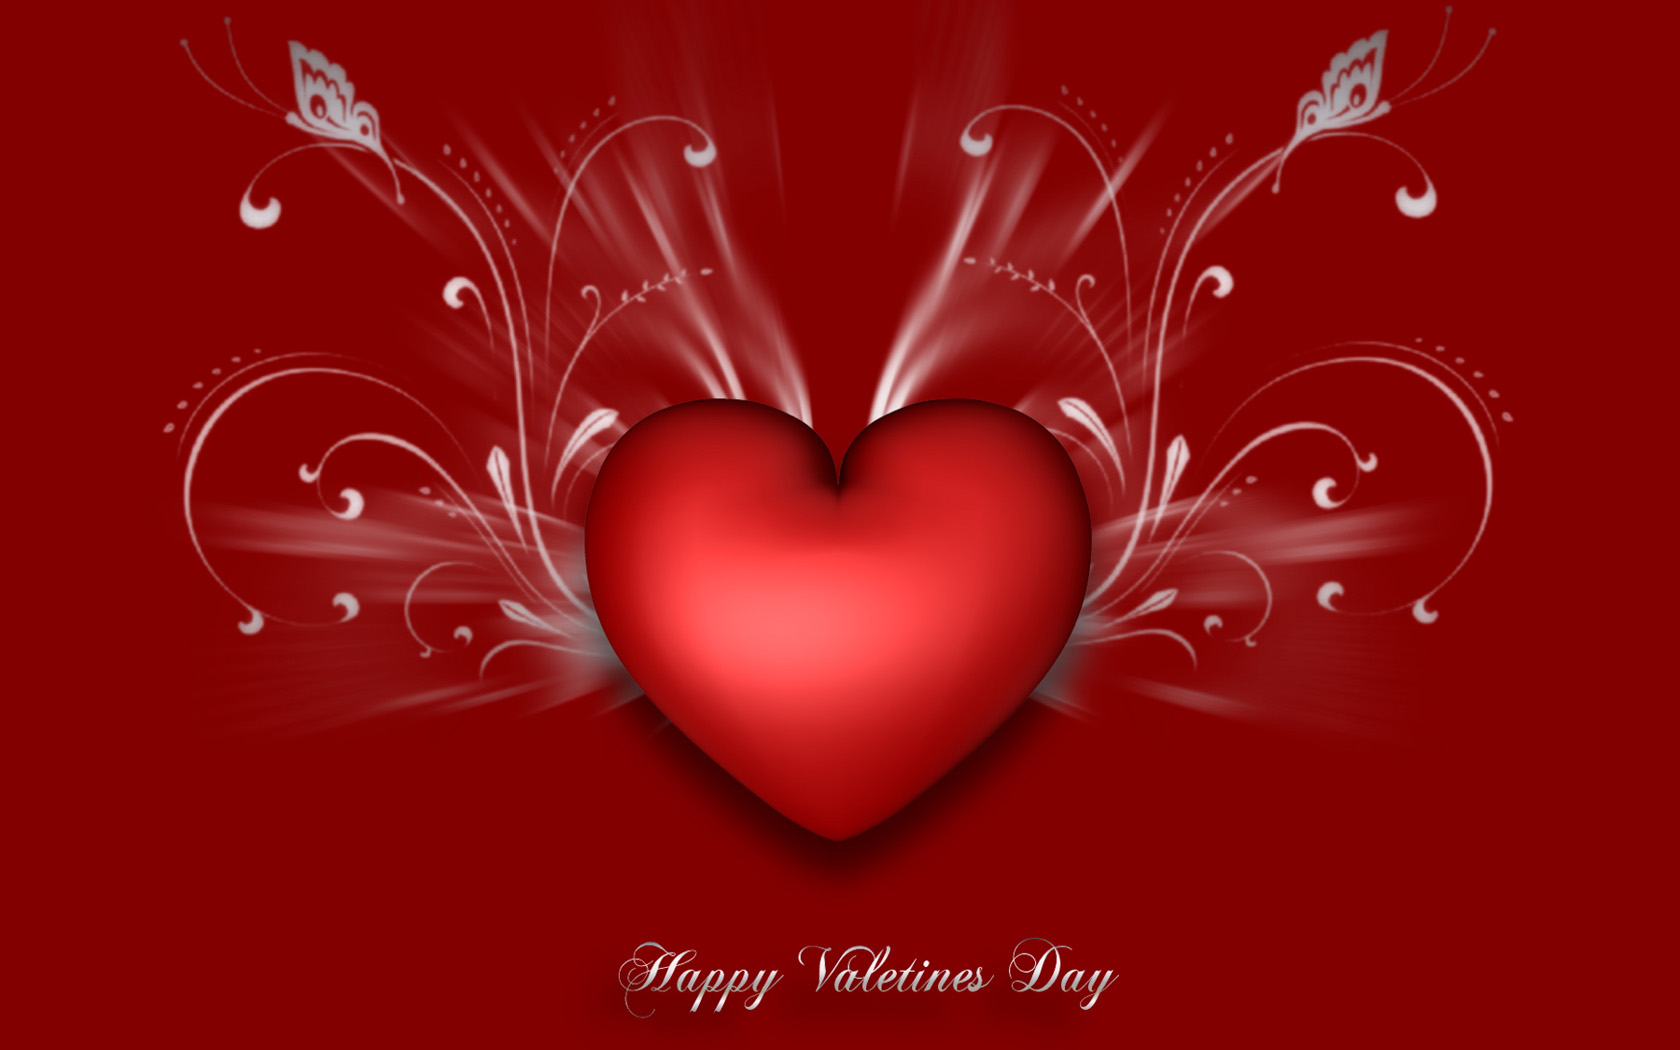 Happy Valentines Day Wallpapers 1680x1050